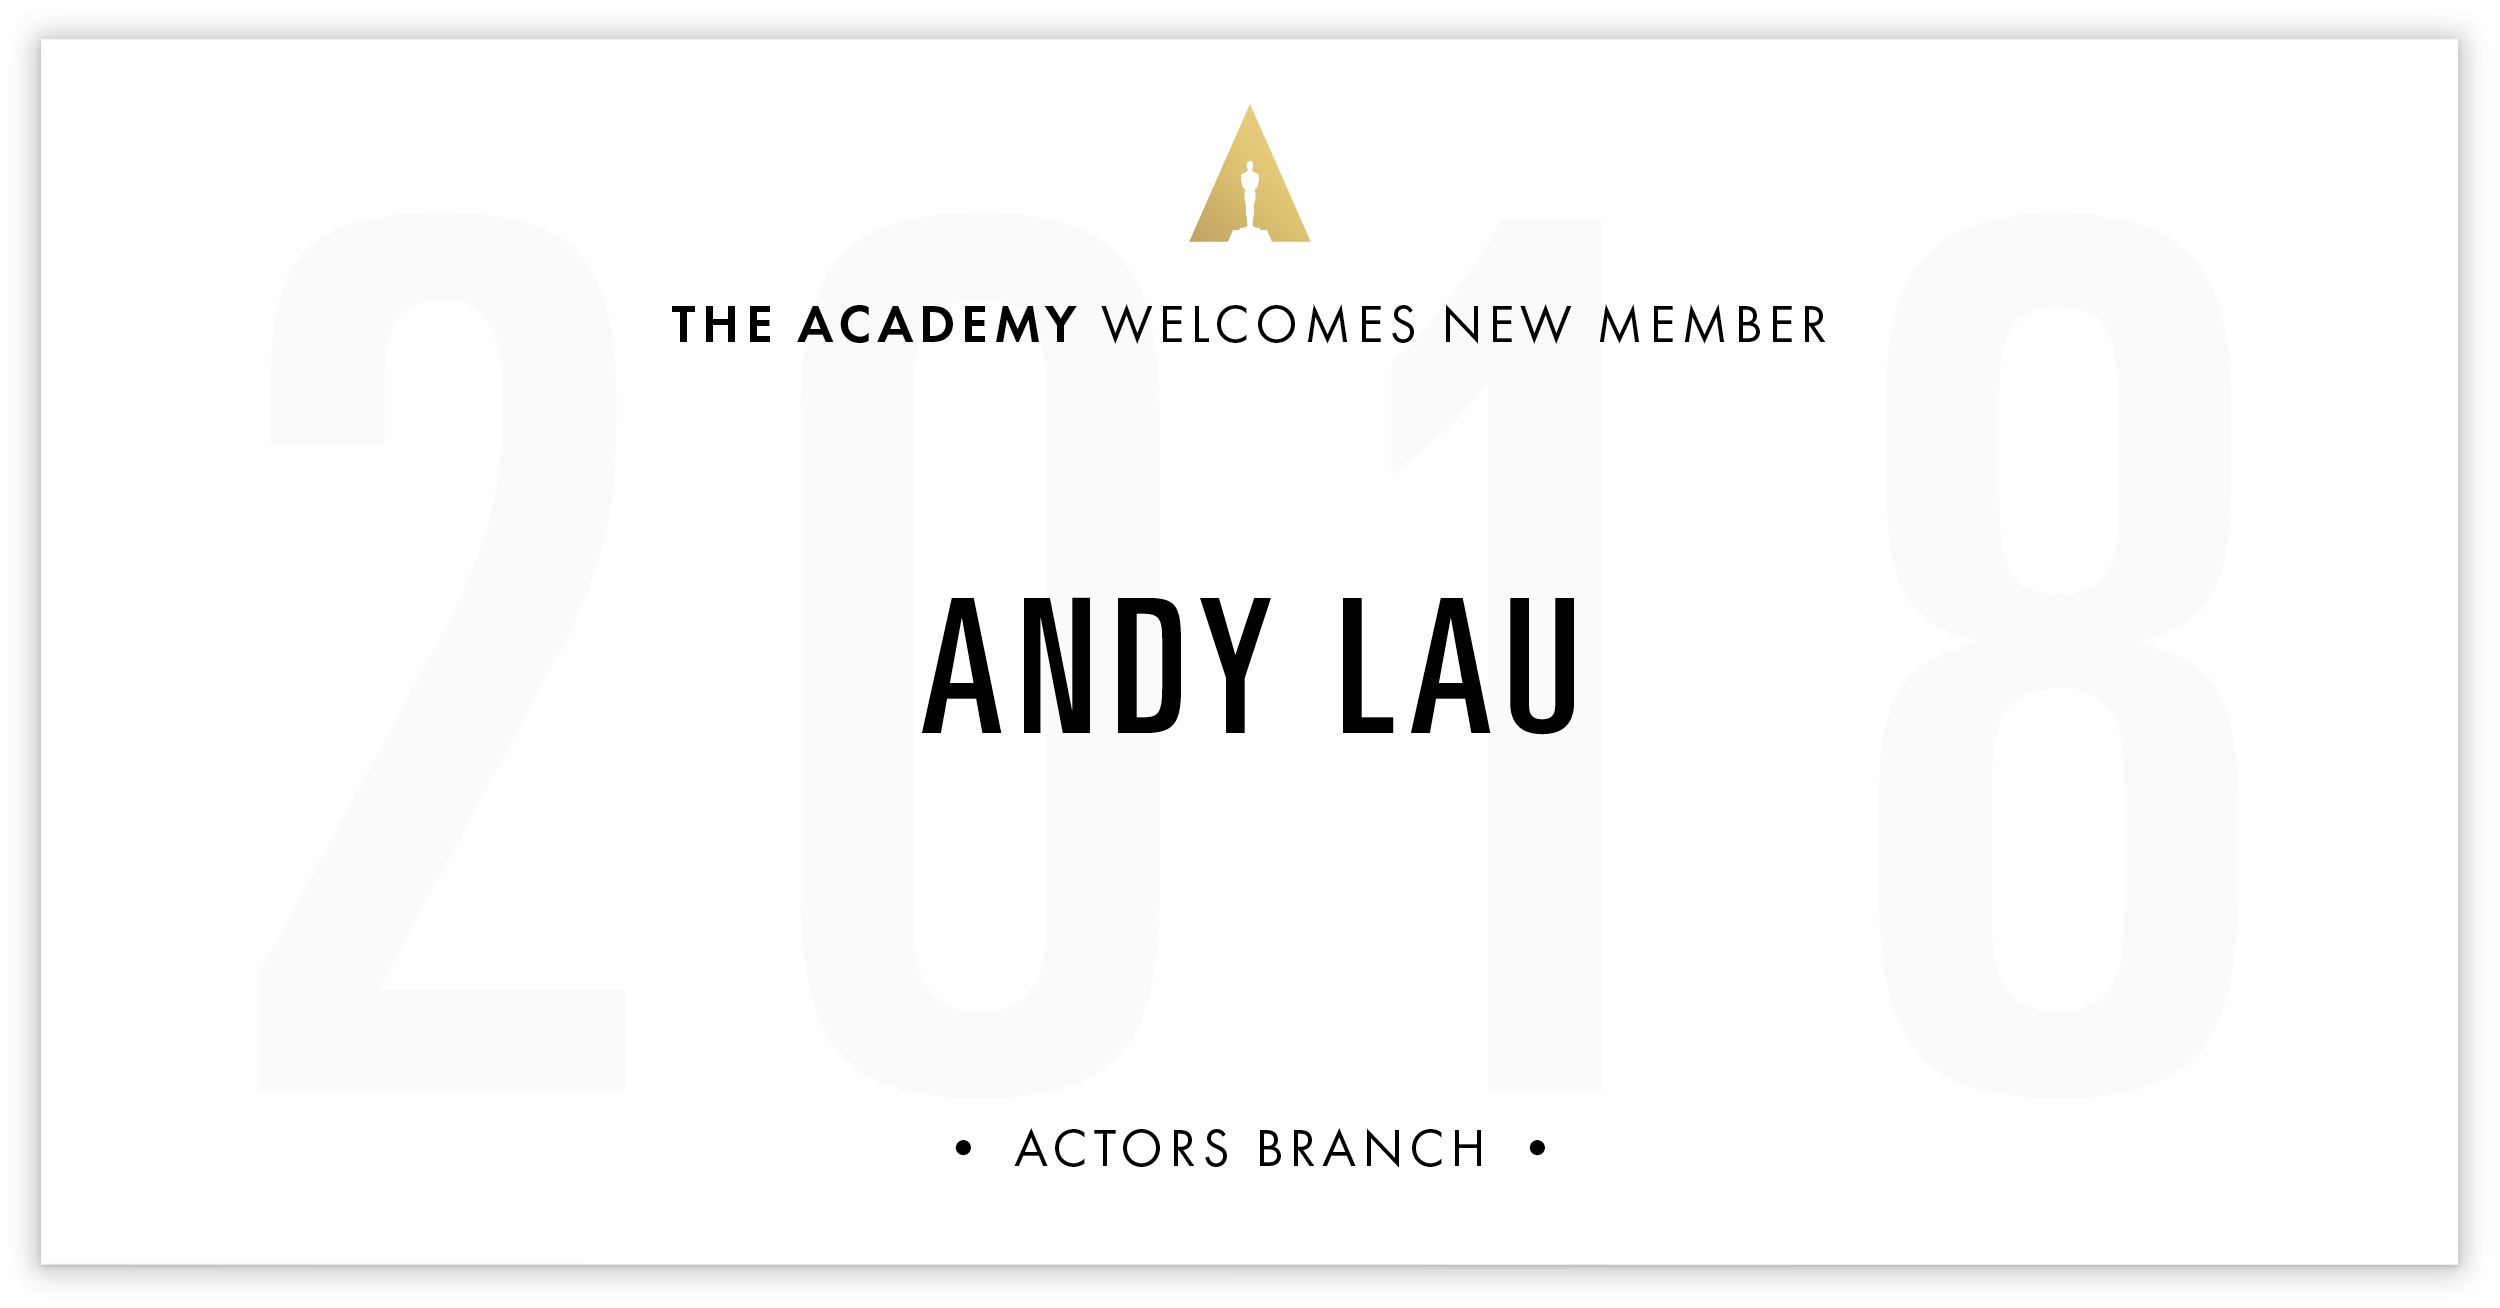 Andy Lau is invited!